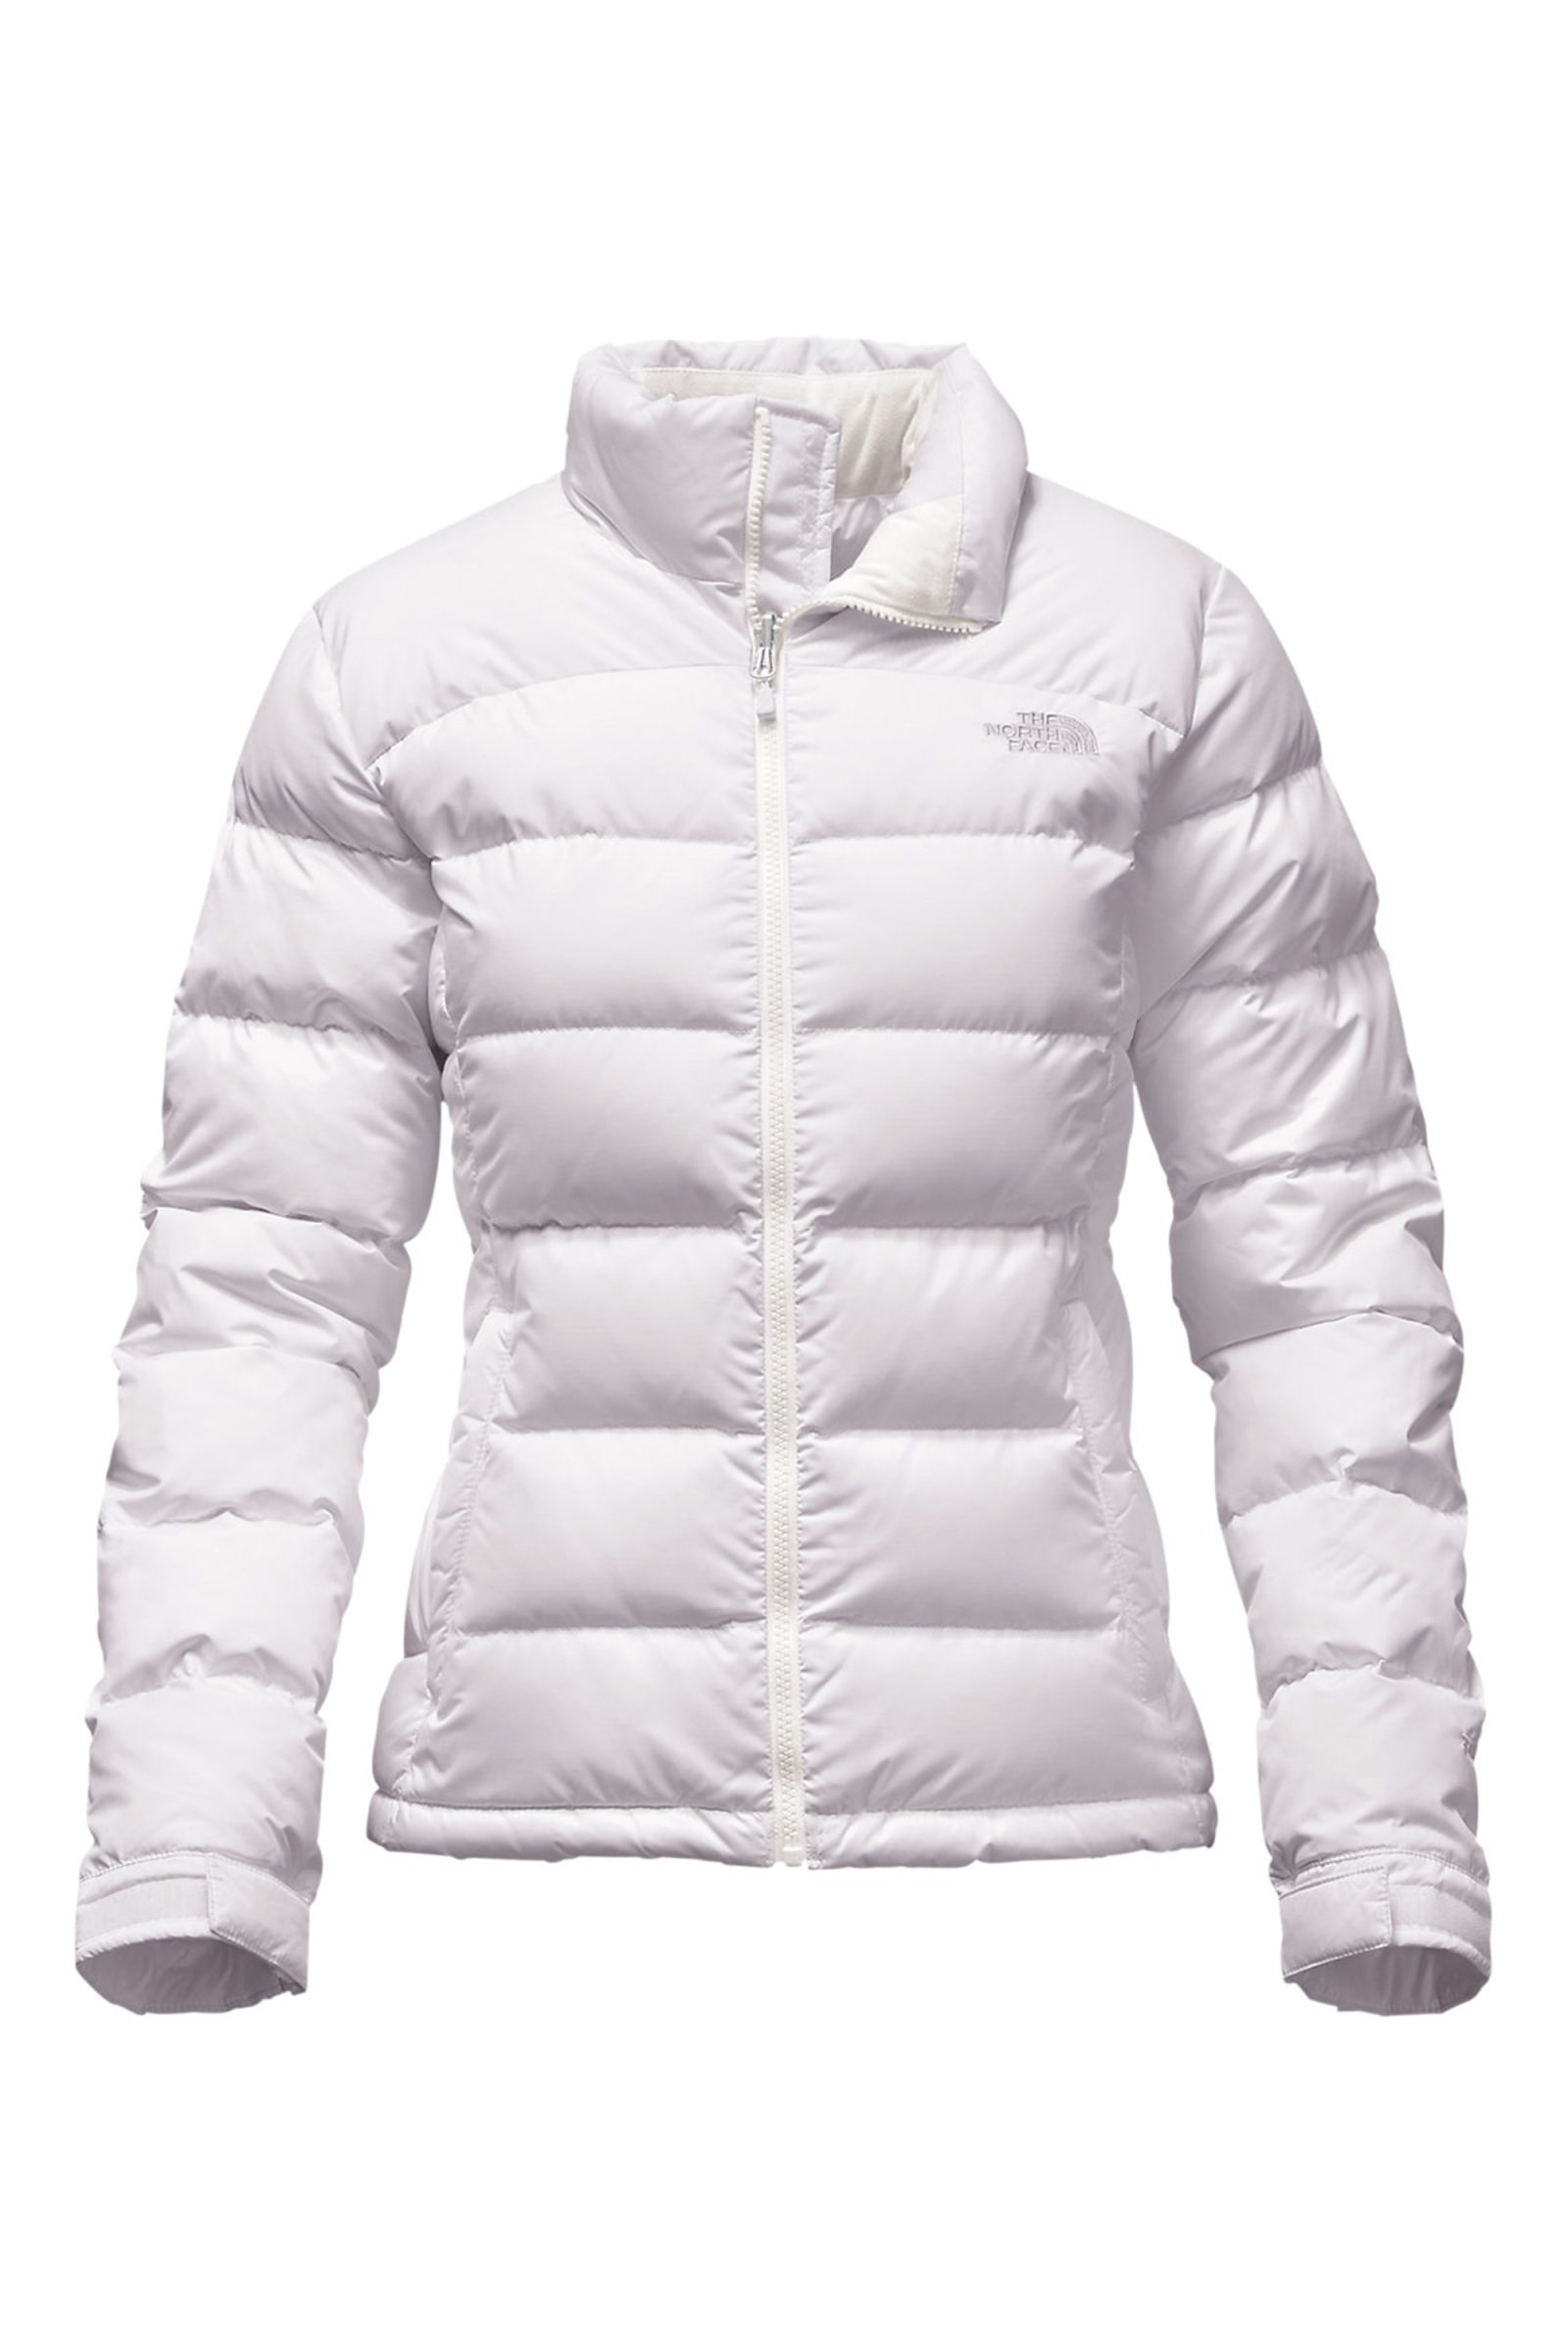 This Puffer Jacket Will Make You Feel Like Missy Elliot White North Face Jacket White Jacket Women North Face Women [ 2400 x 1600 Pixel ]